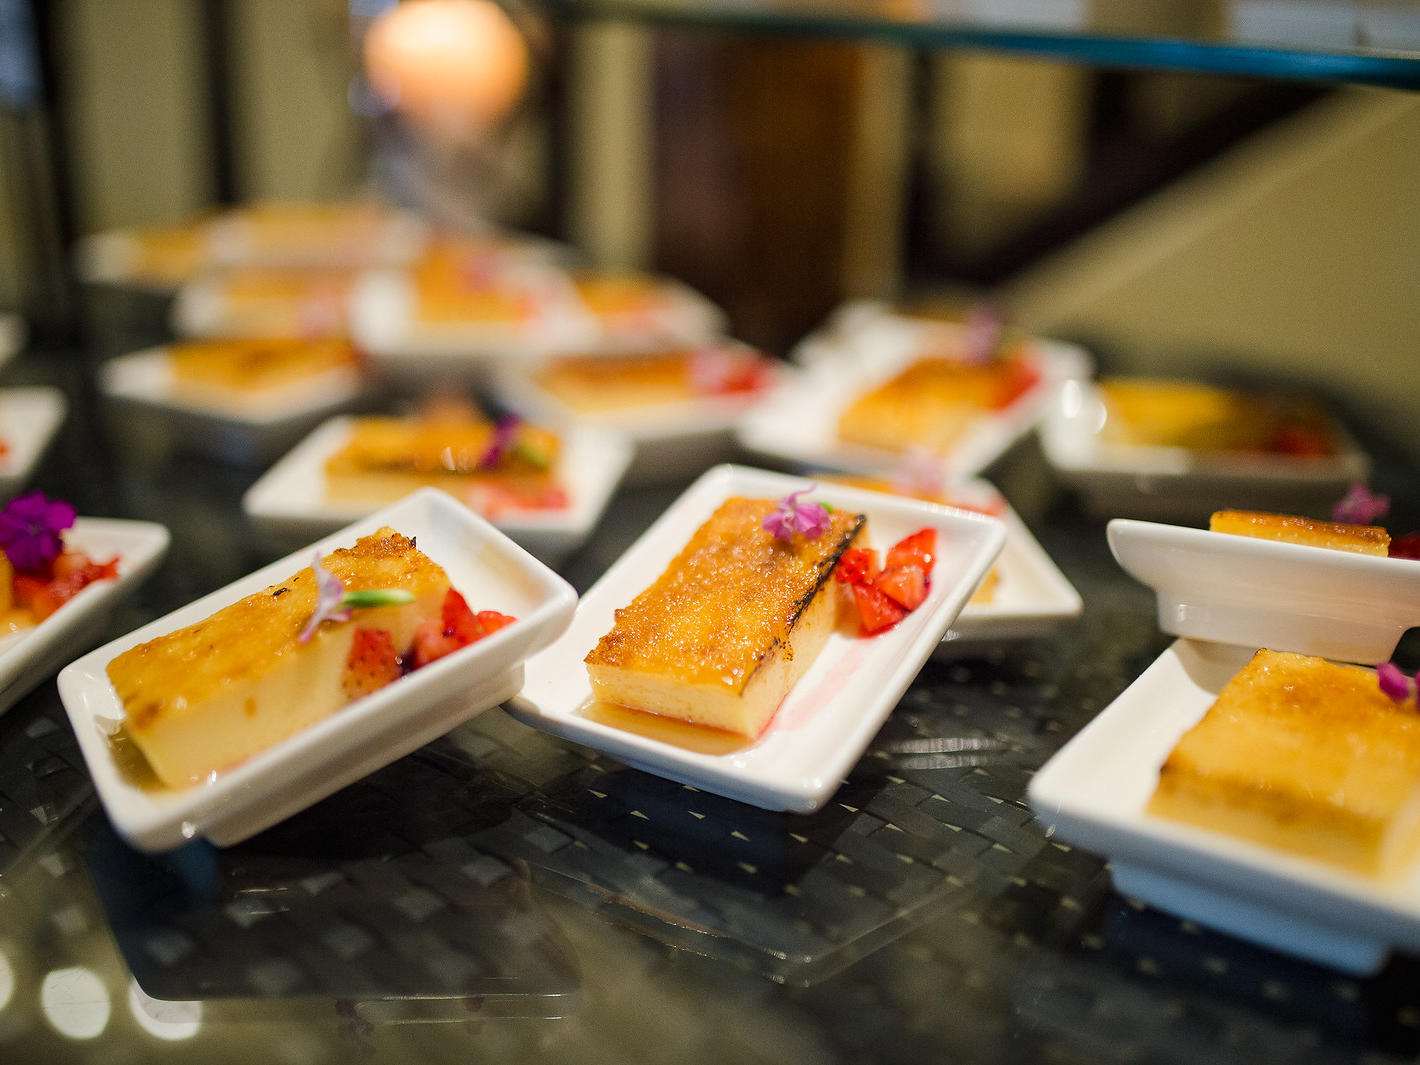 desserts station with flan plates